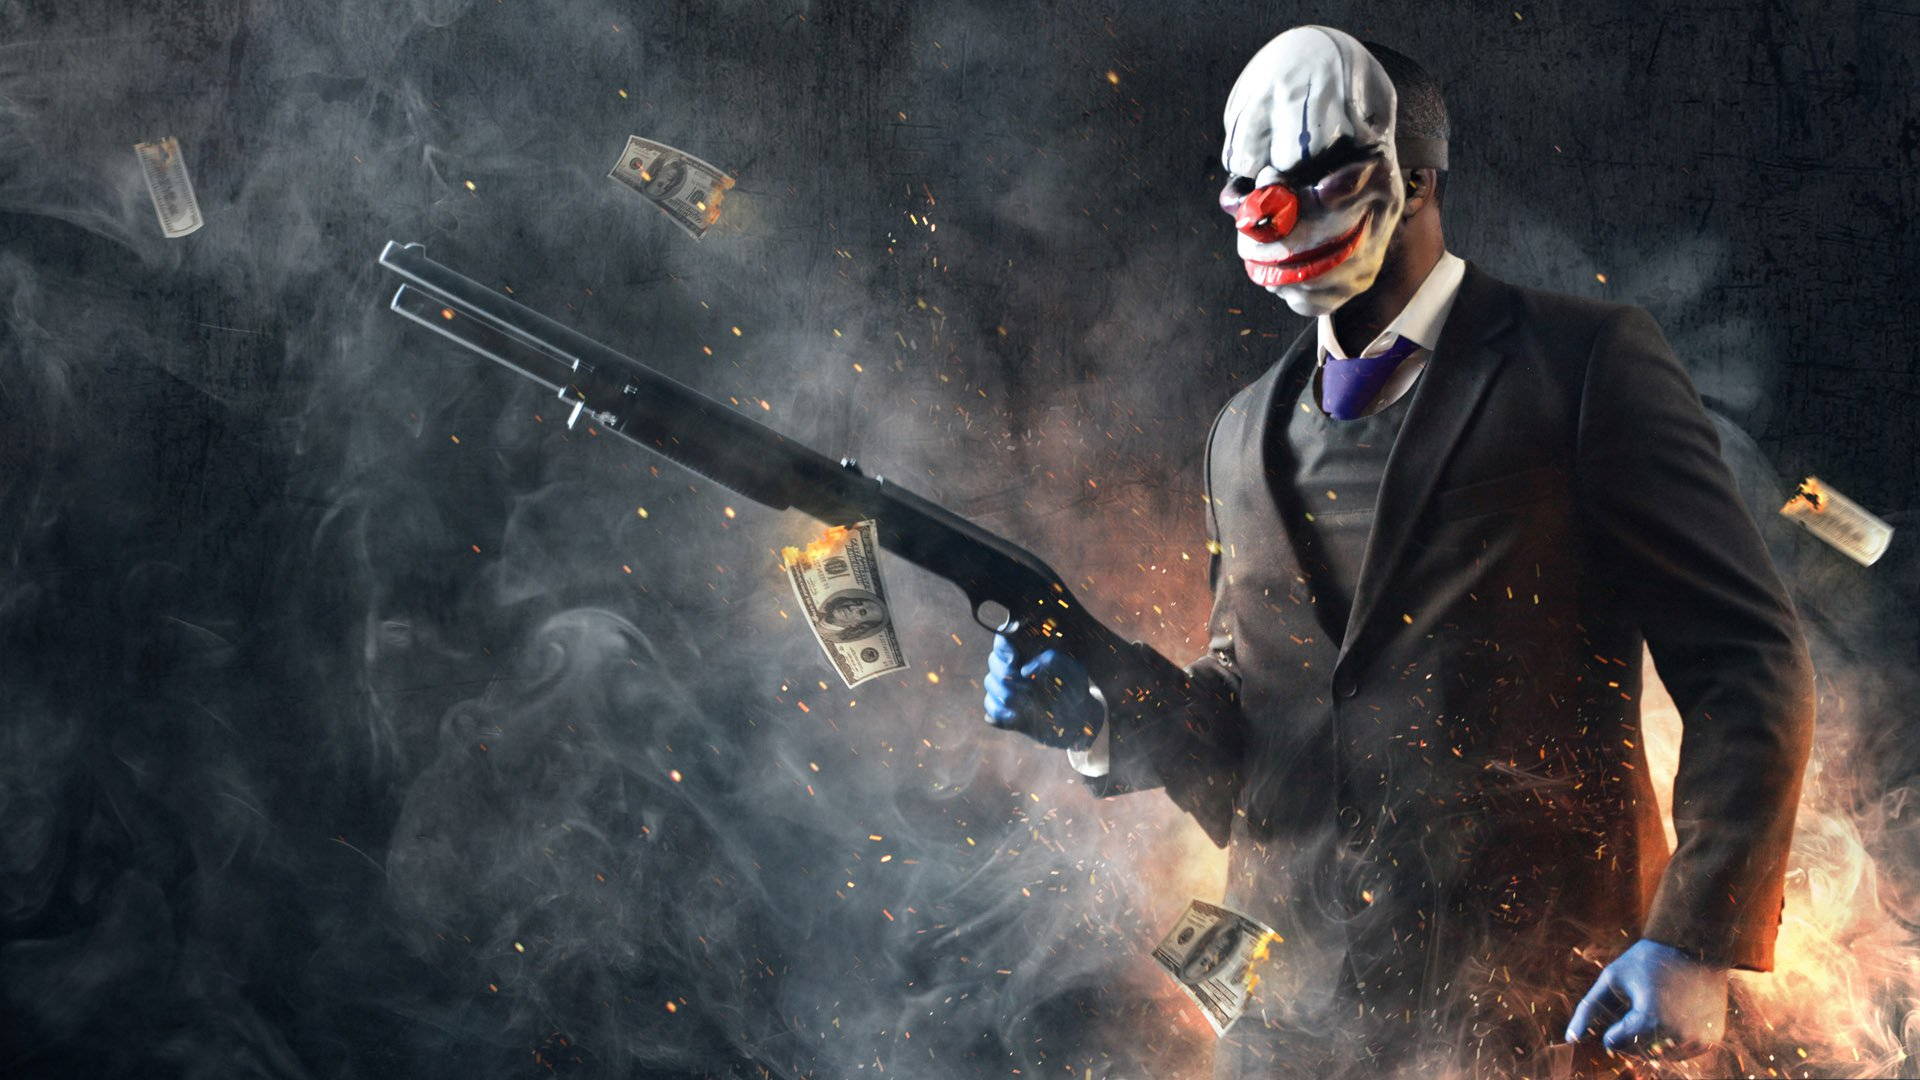 Payday 3 coming by 2023, Starbreeze says